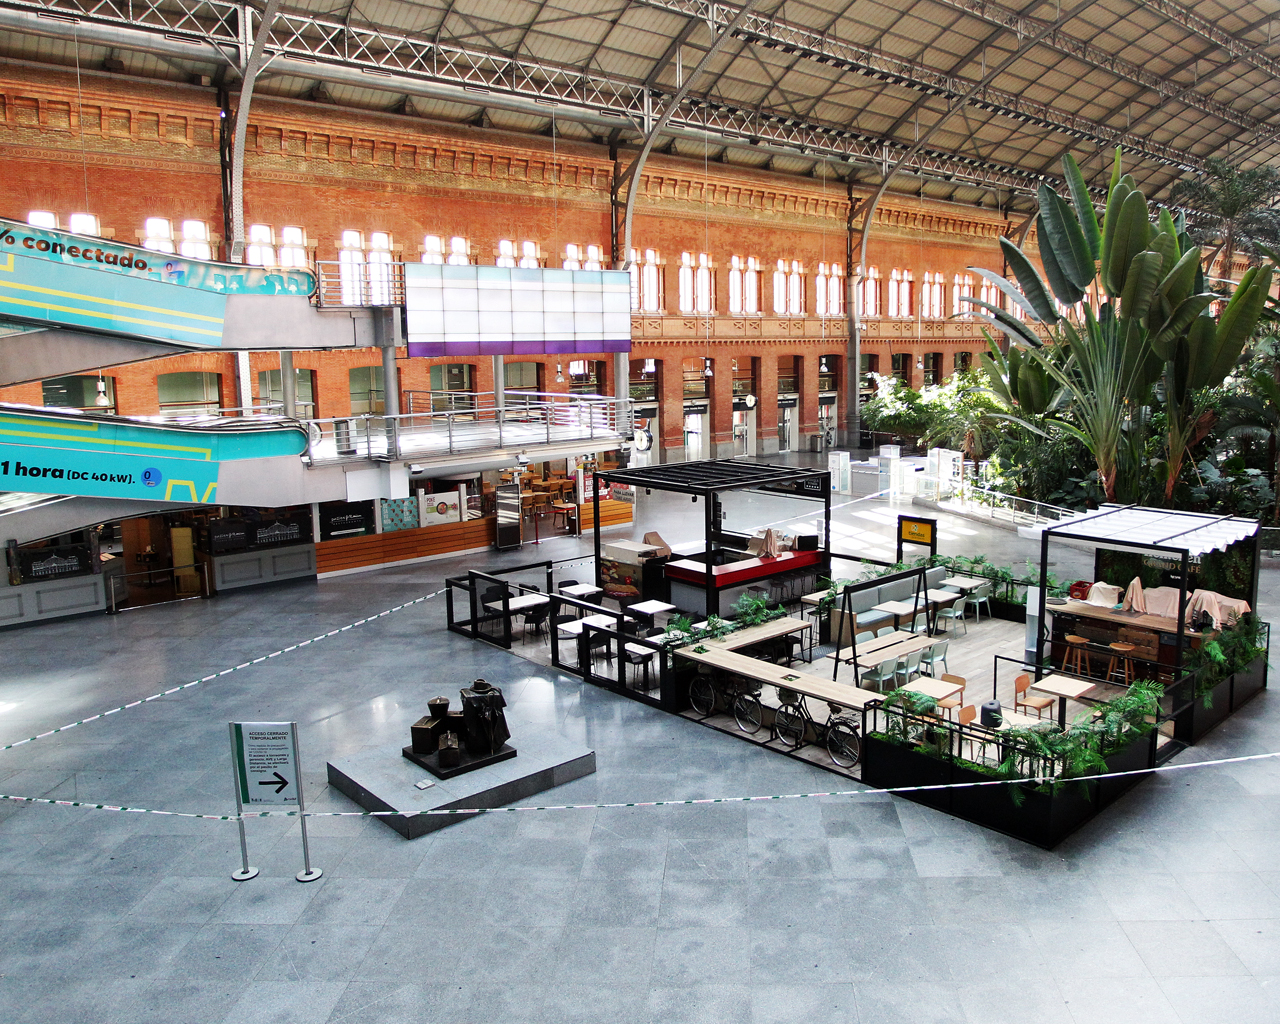 Estación de Atocha. Madrid. 13/04/2020.